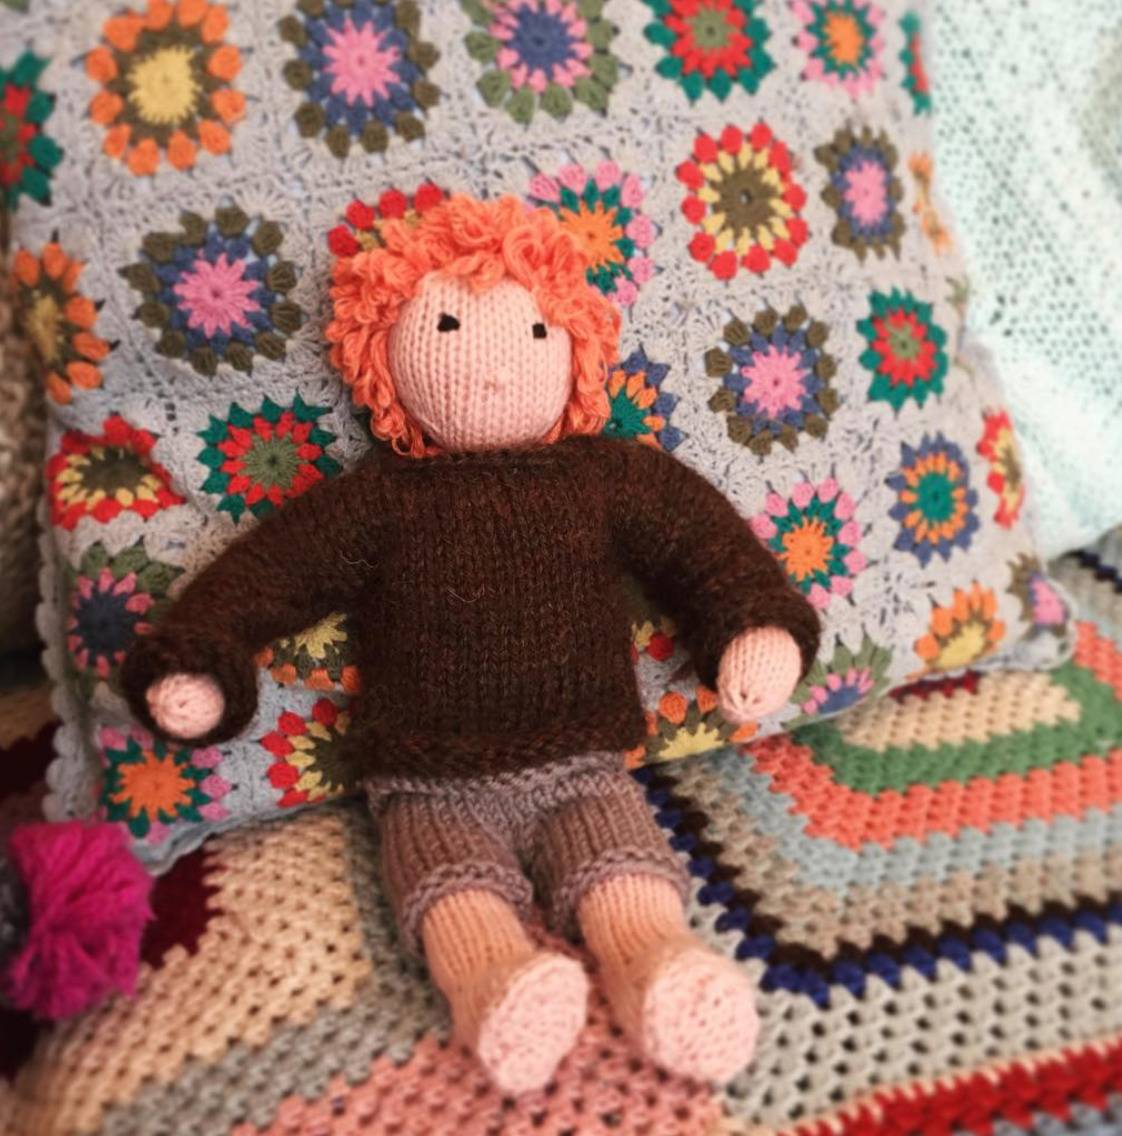 knitted boyfriend with red hair sitting on bed